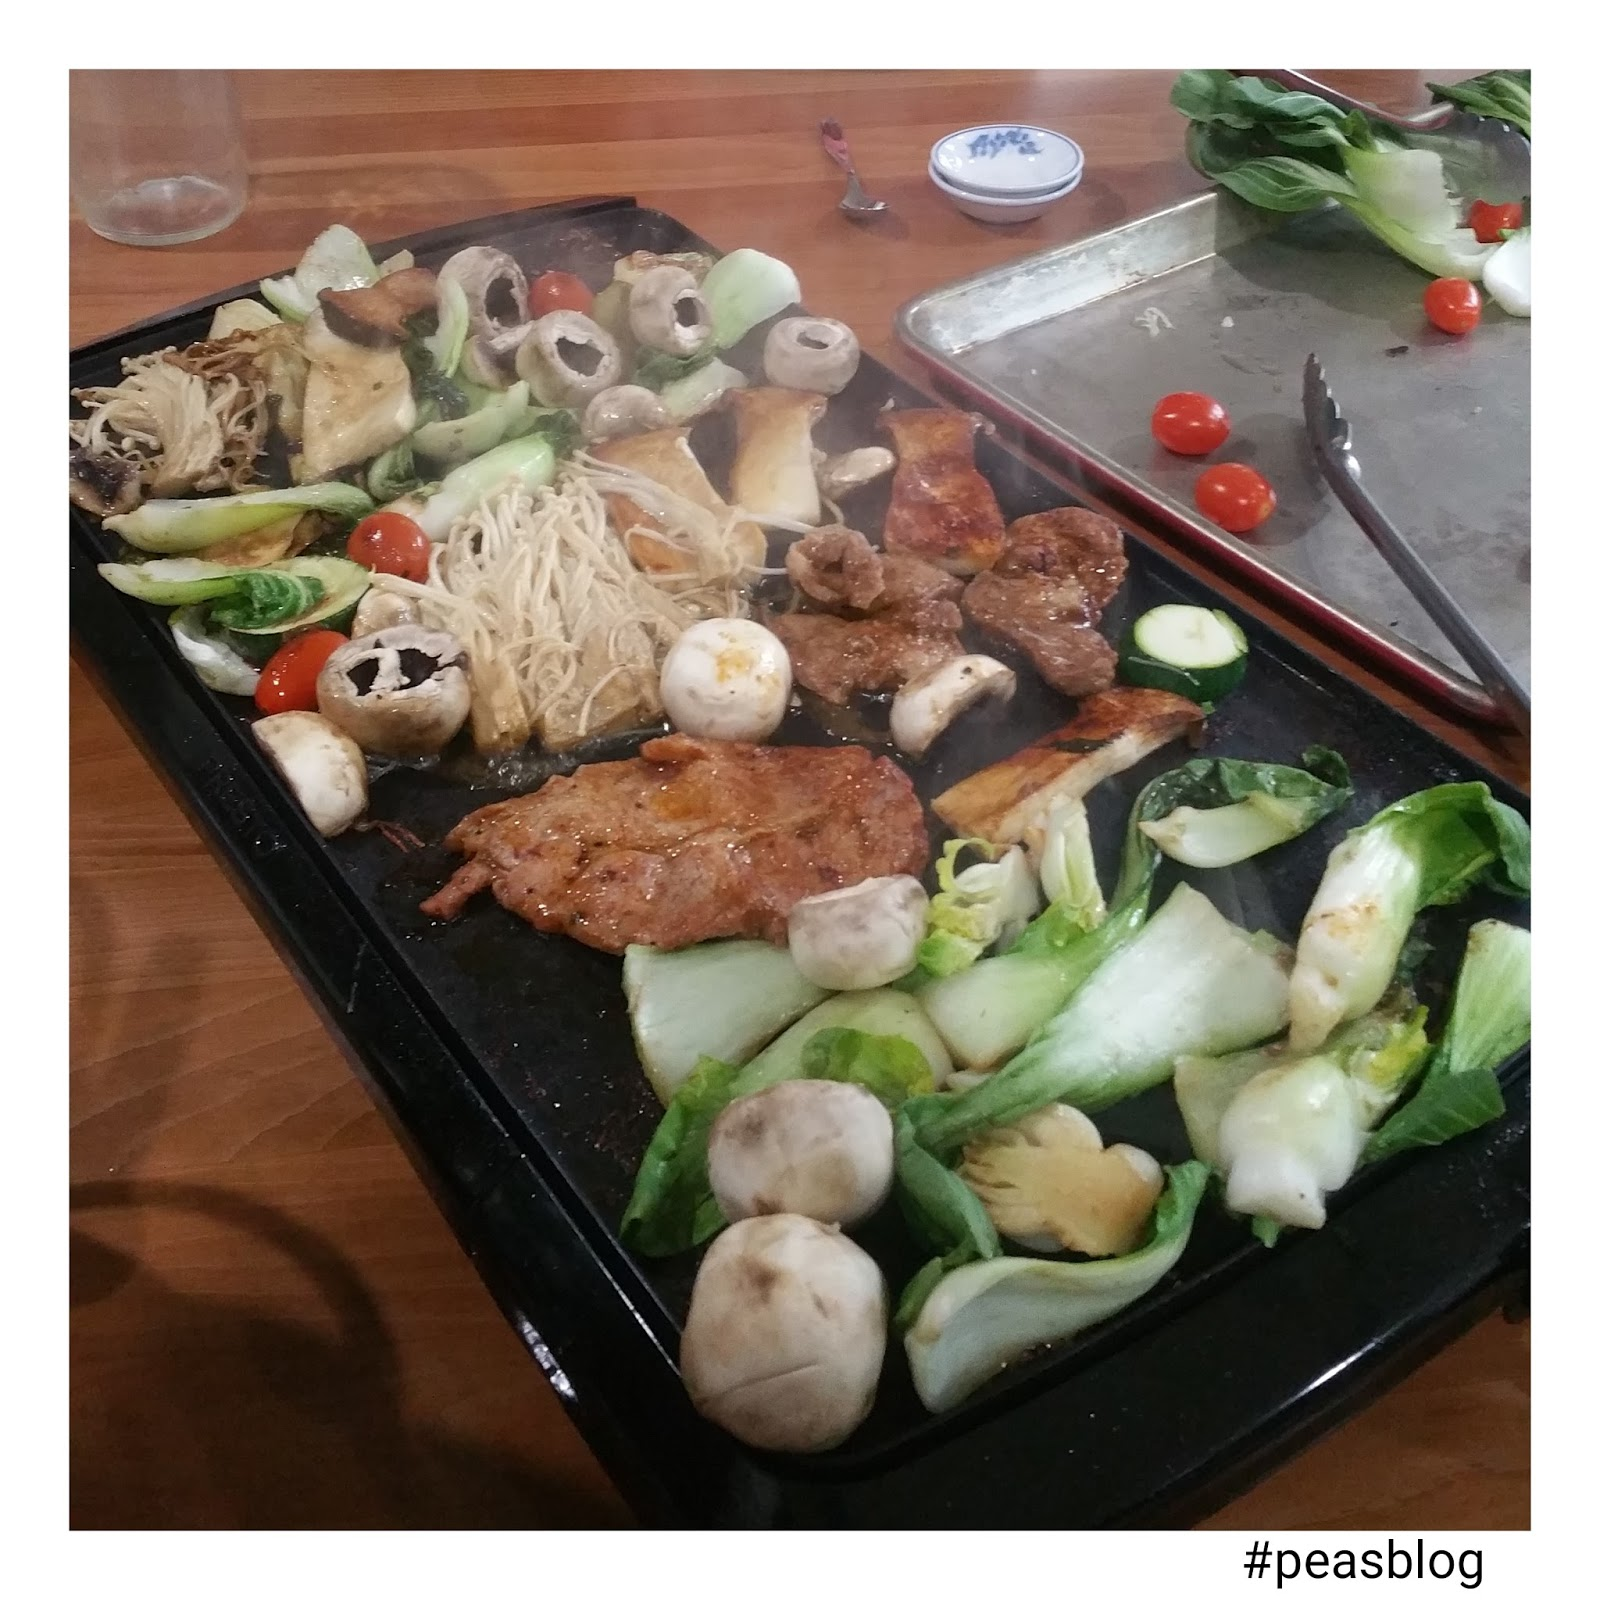 Give peas a chance fusion seen dat lao bbq but seen in lao is meat dat means to sear this method is used to cook meats to wrap in lettuce or rice paper wraps its so yummy forumfinder Image collections